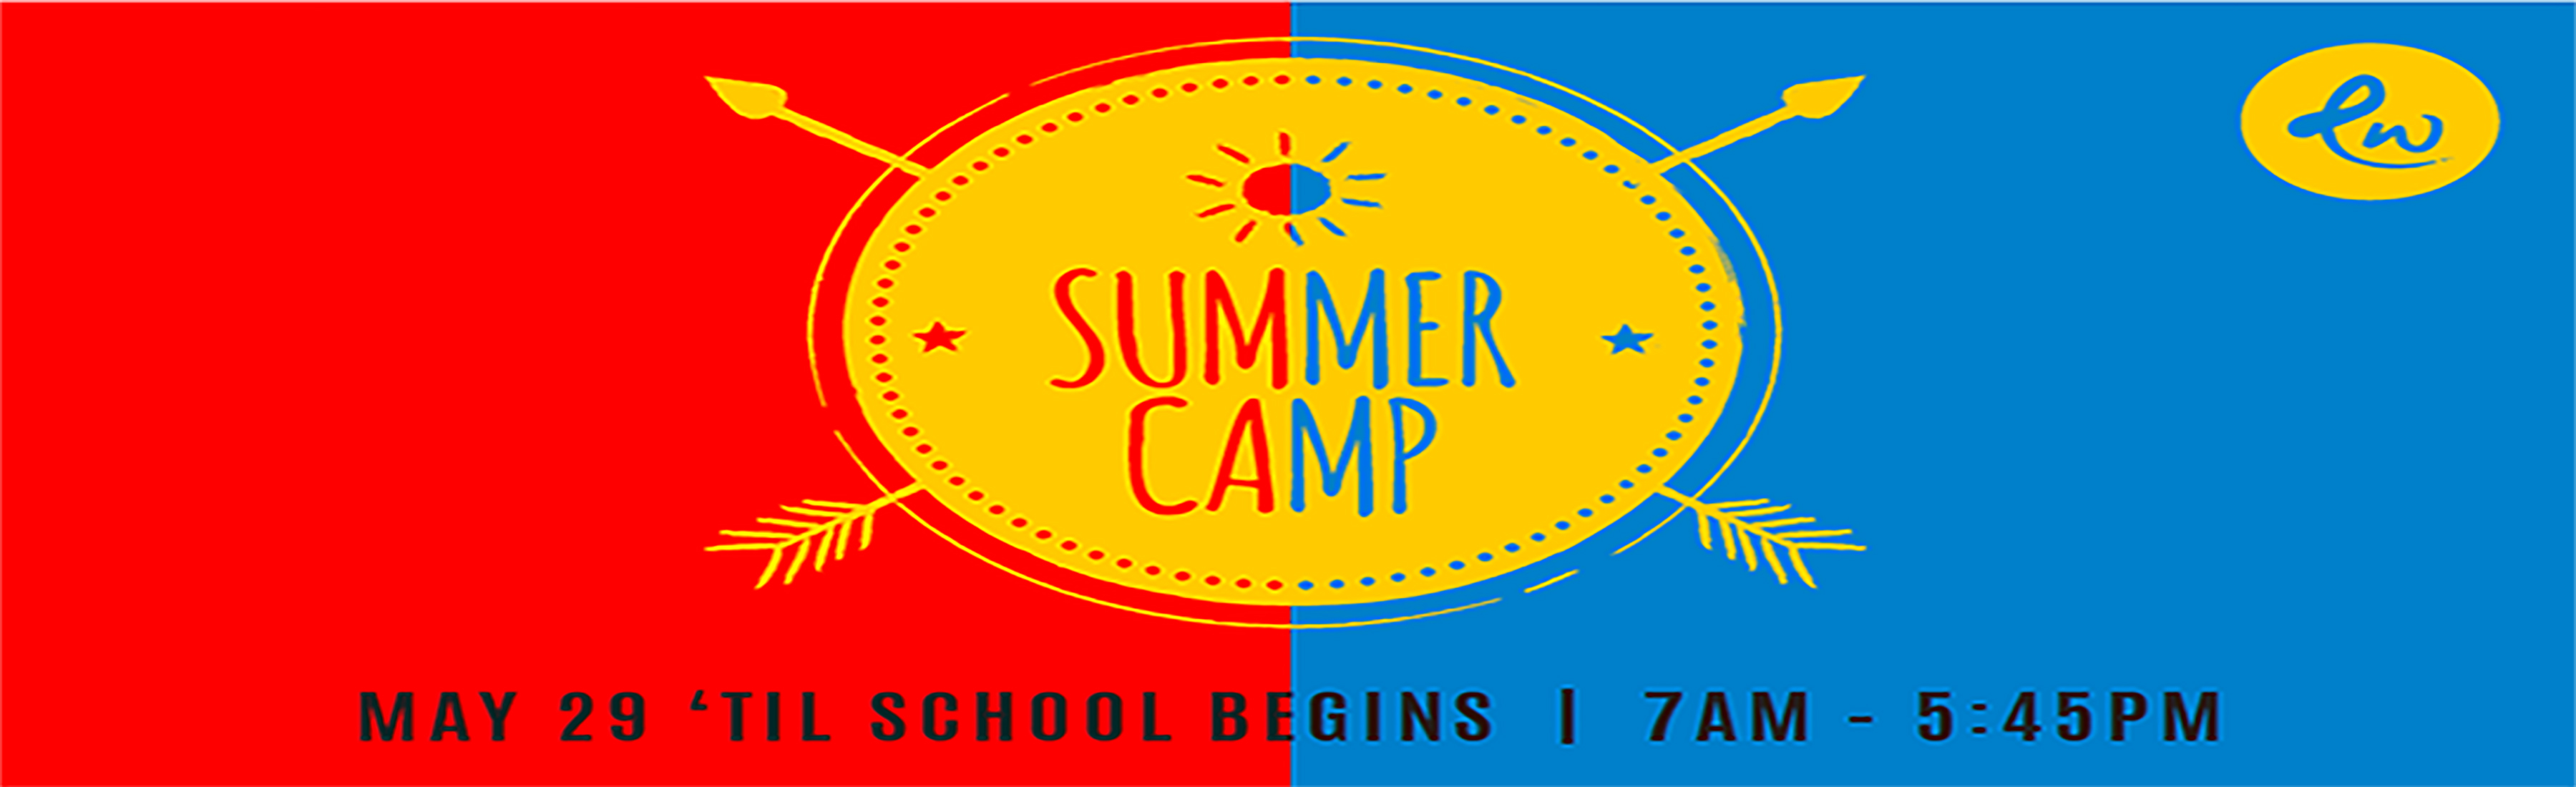 Summer Day Camp 3600x1100